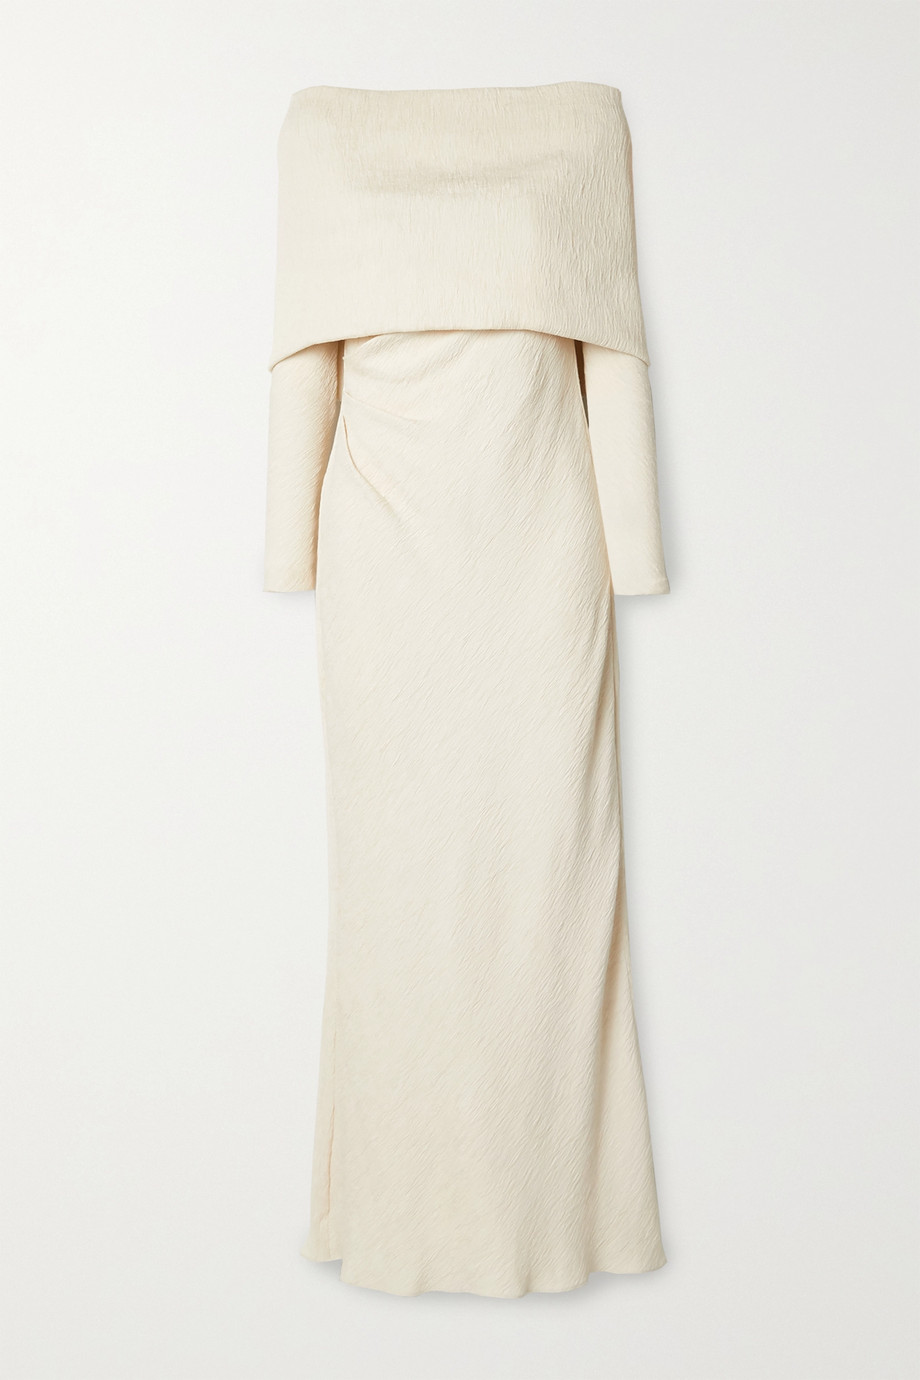 Johanna Ortiz + NET SUSTAIN The Real Truth draped crinkled-crepe maxi dress